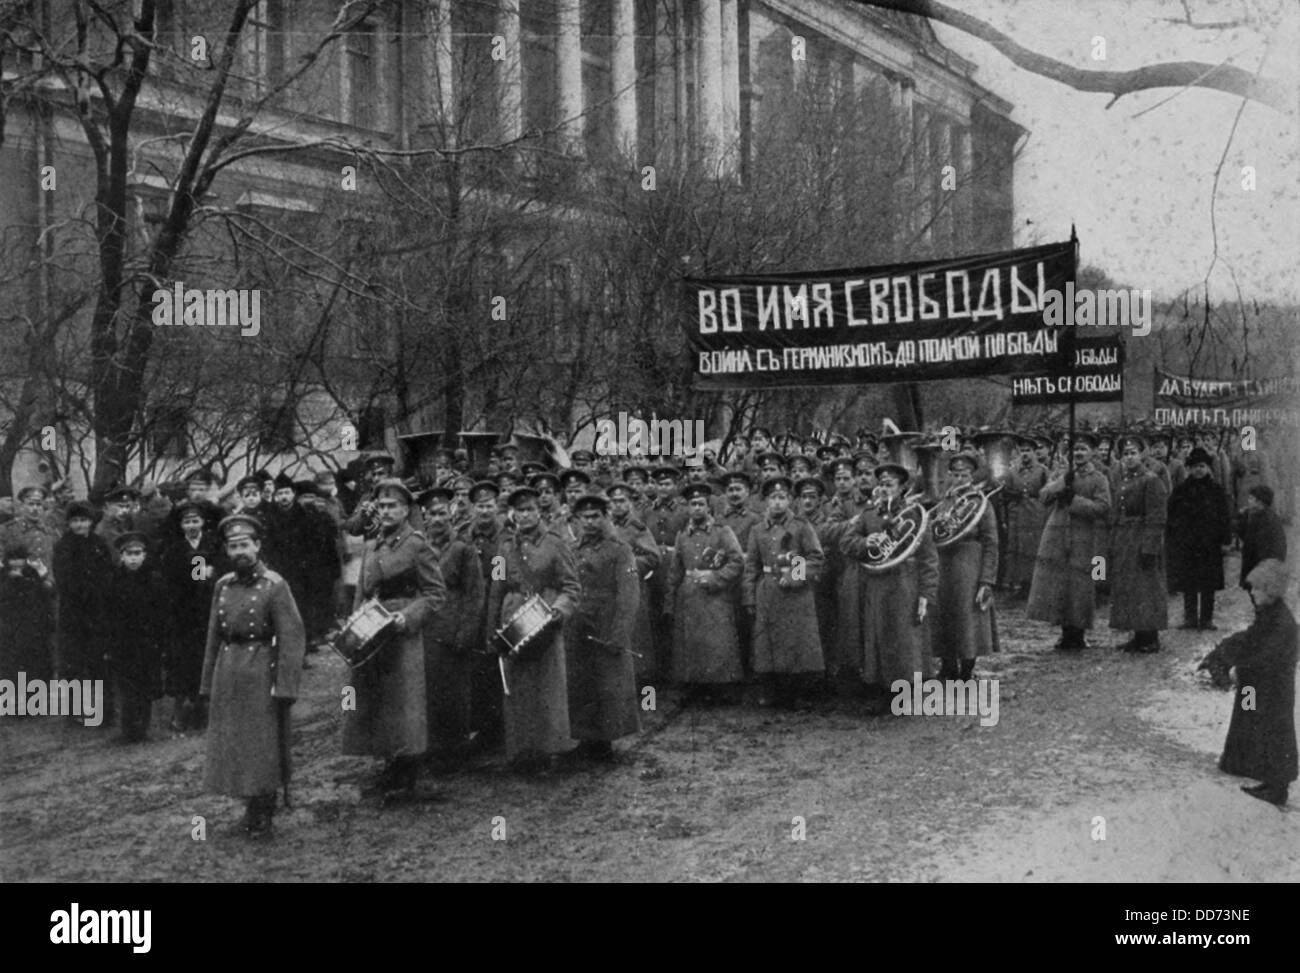 Russian Revolutionary troops demonstrate in front of Engineers Palace. April 1, 1917. Their sign translates 'In - Stock Image